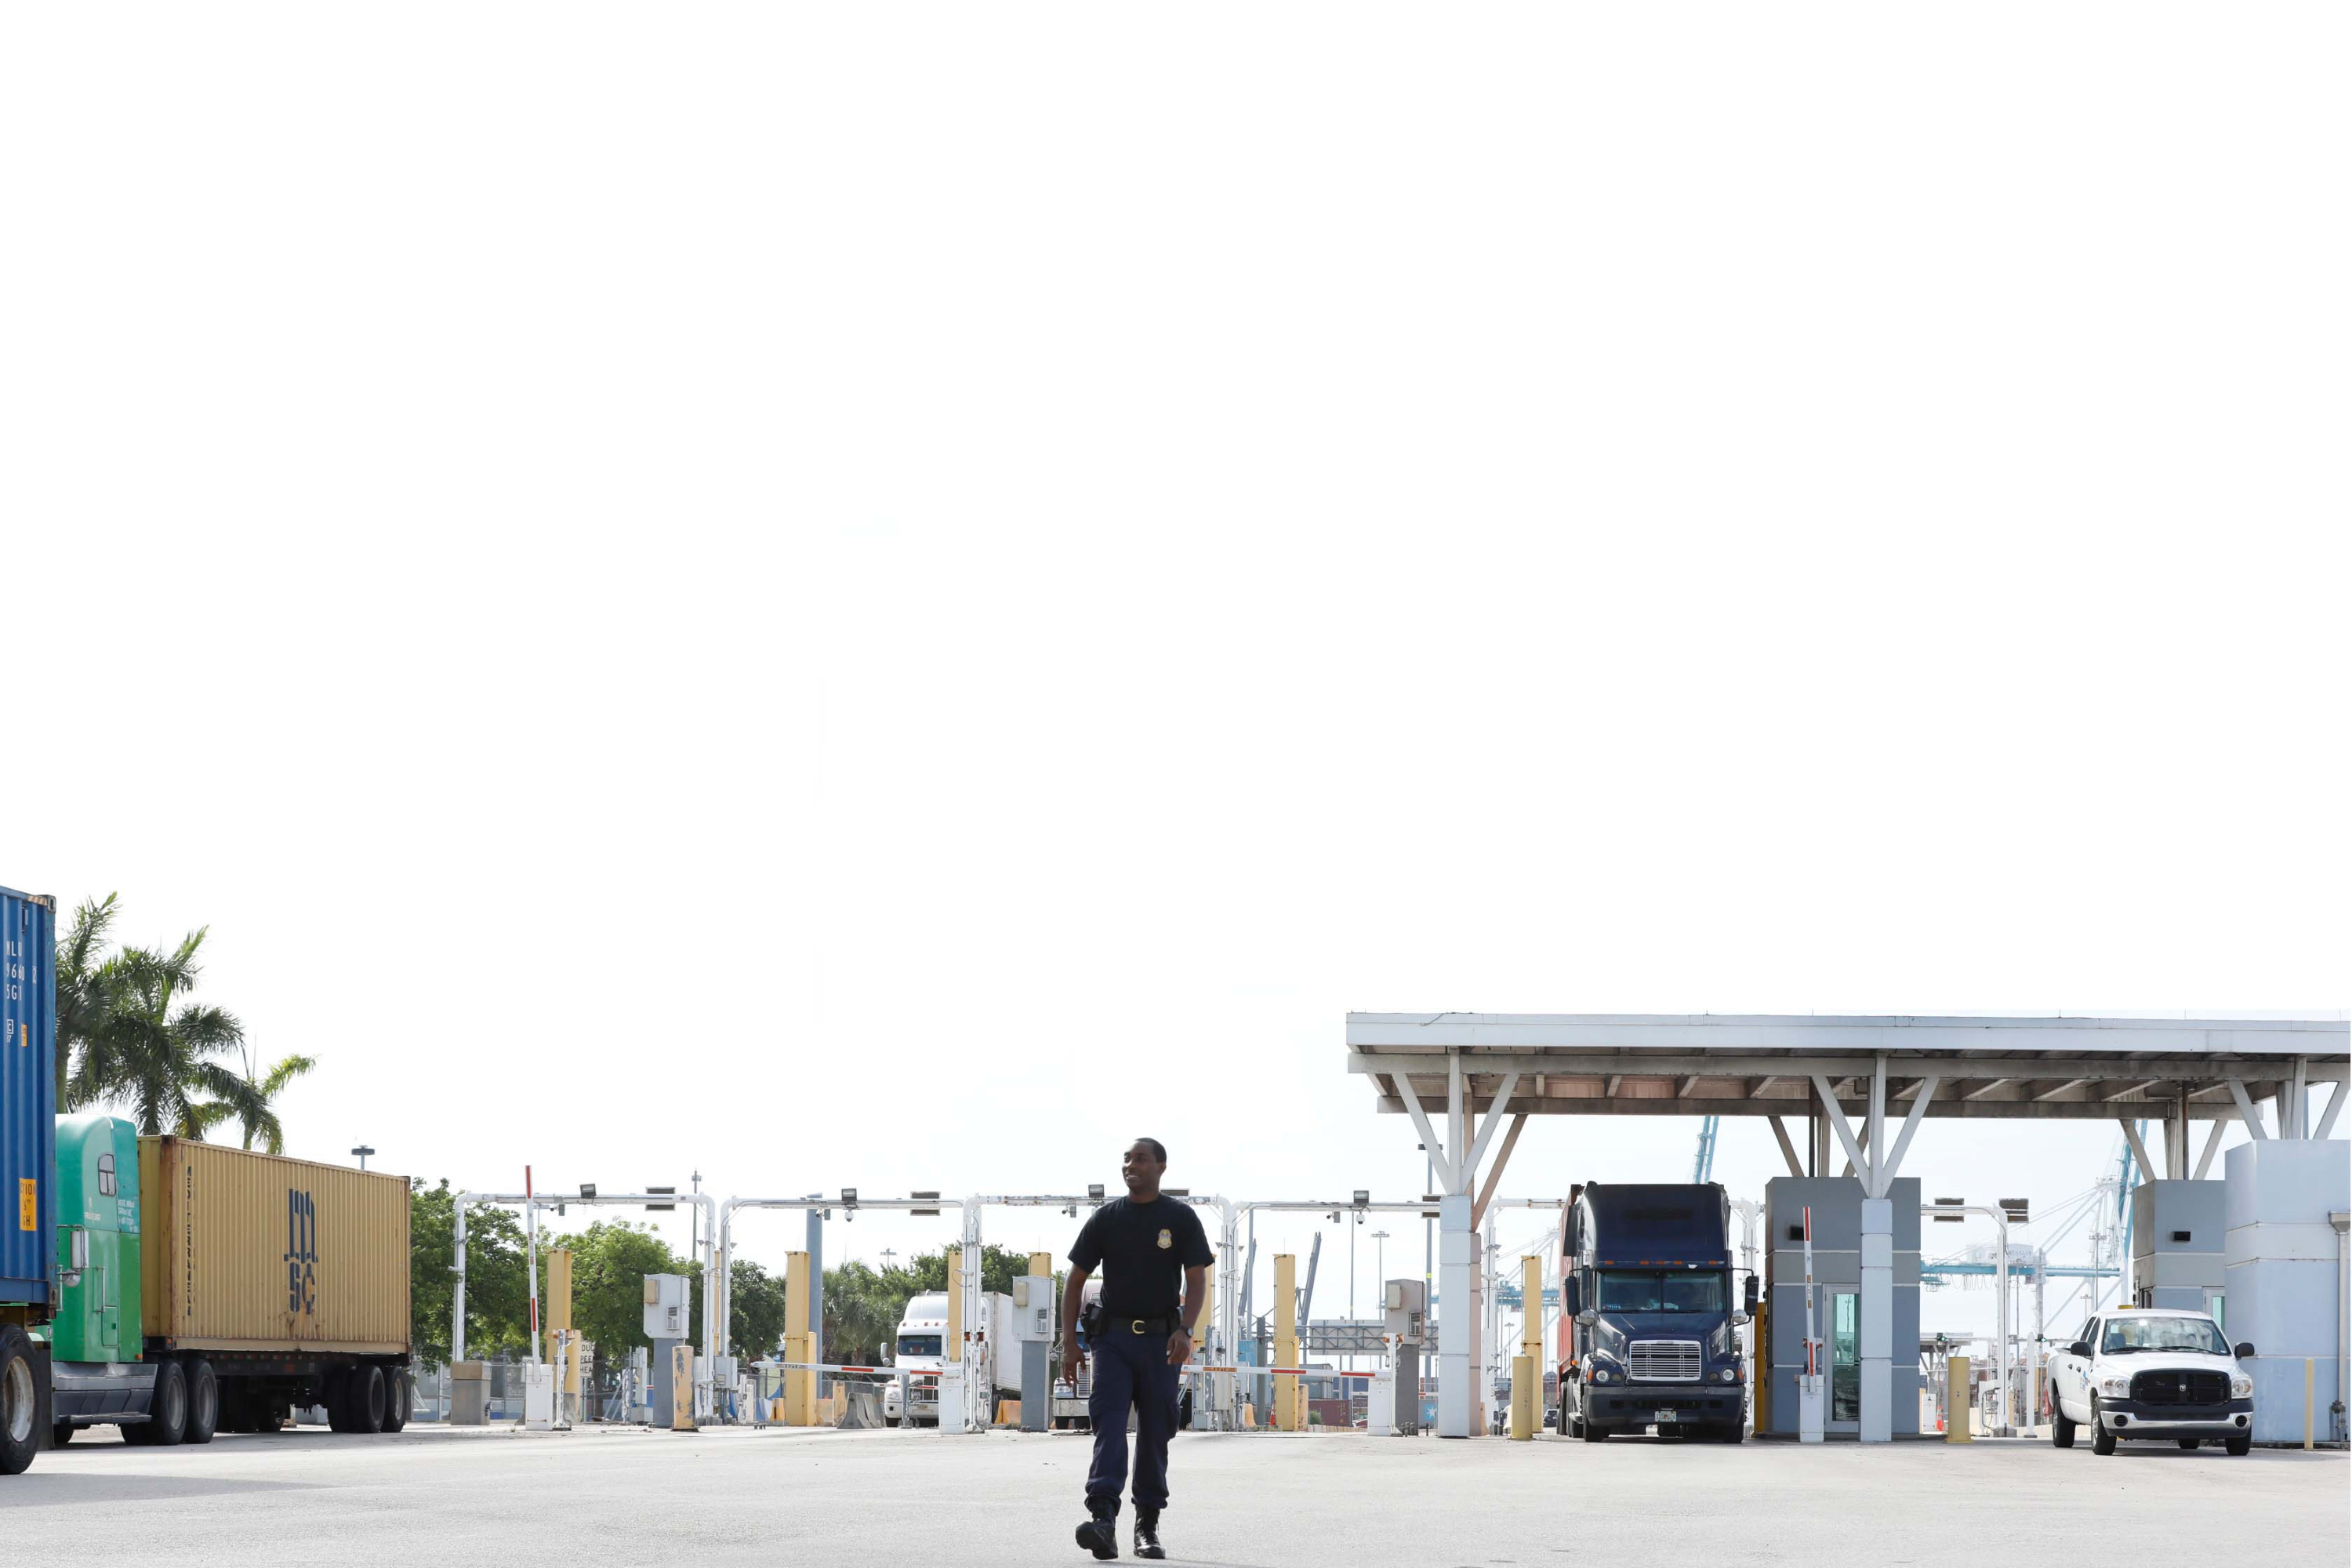 Male CBP Officer walking in front of cargo containers